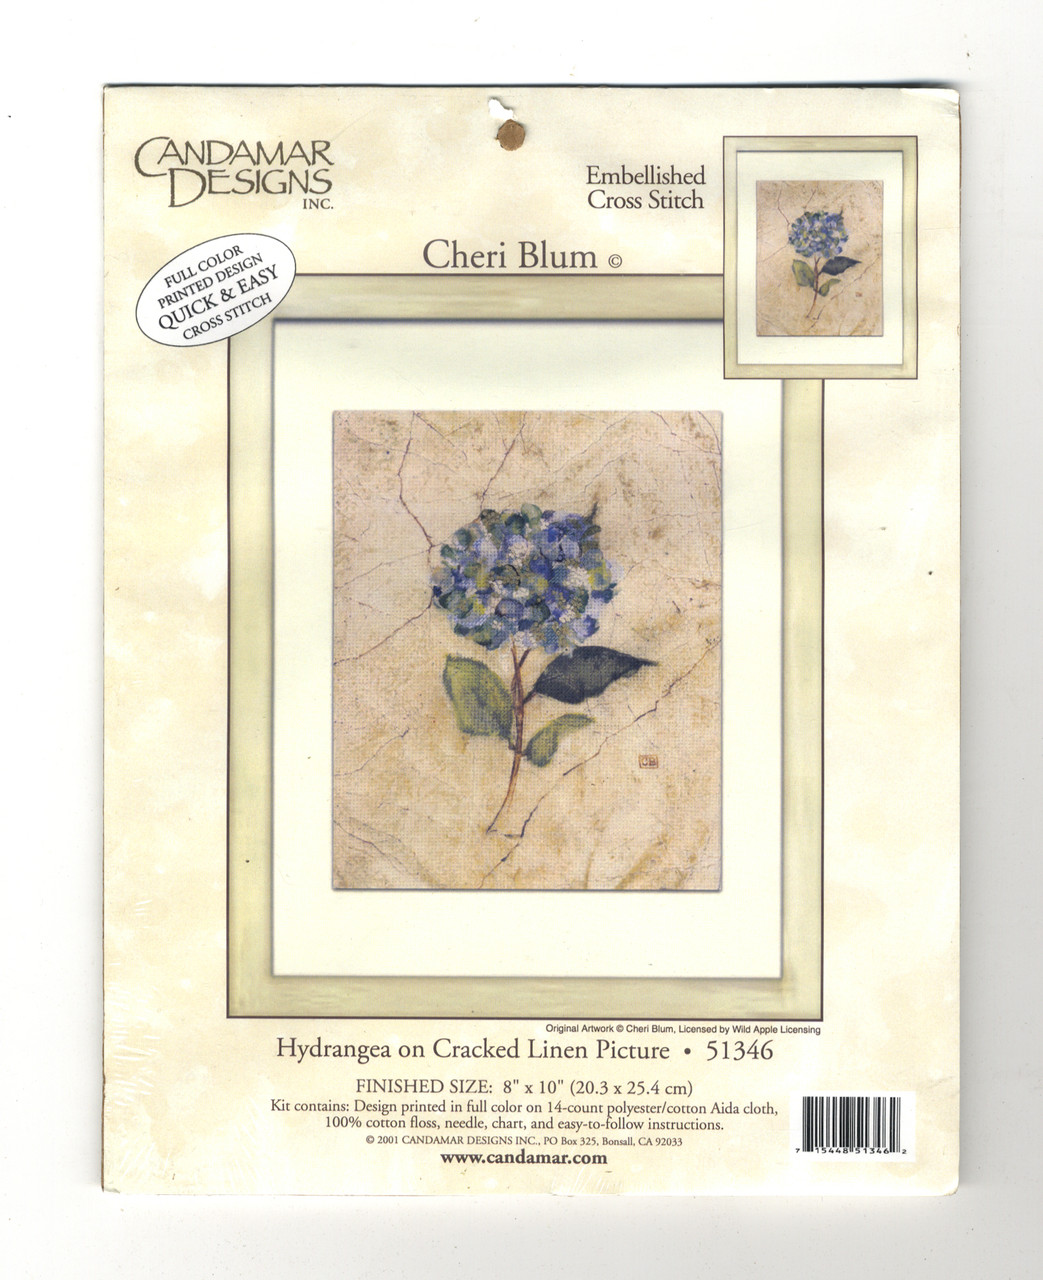 Candamar - Hydrangea on Cracked Linen